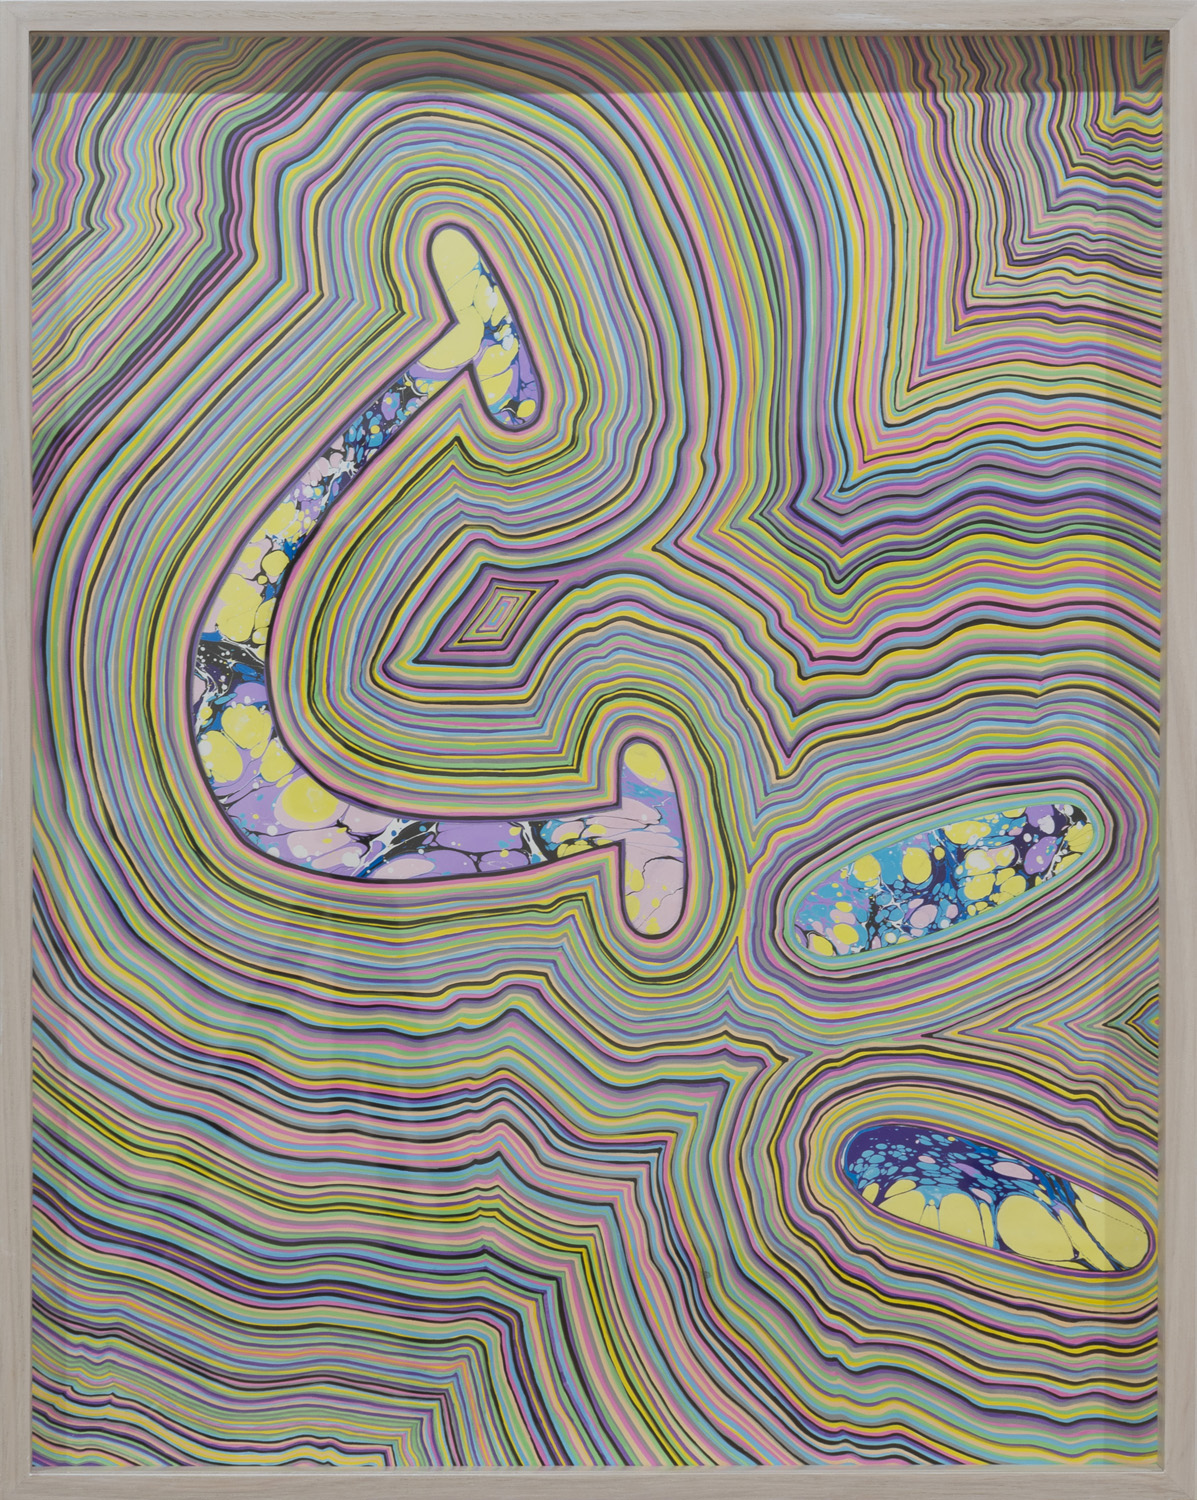 TGIF 3 (2016) marbled paper and acrylic paint pen on paper, 24 x 18 inches